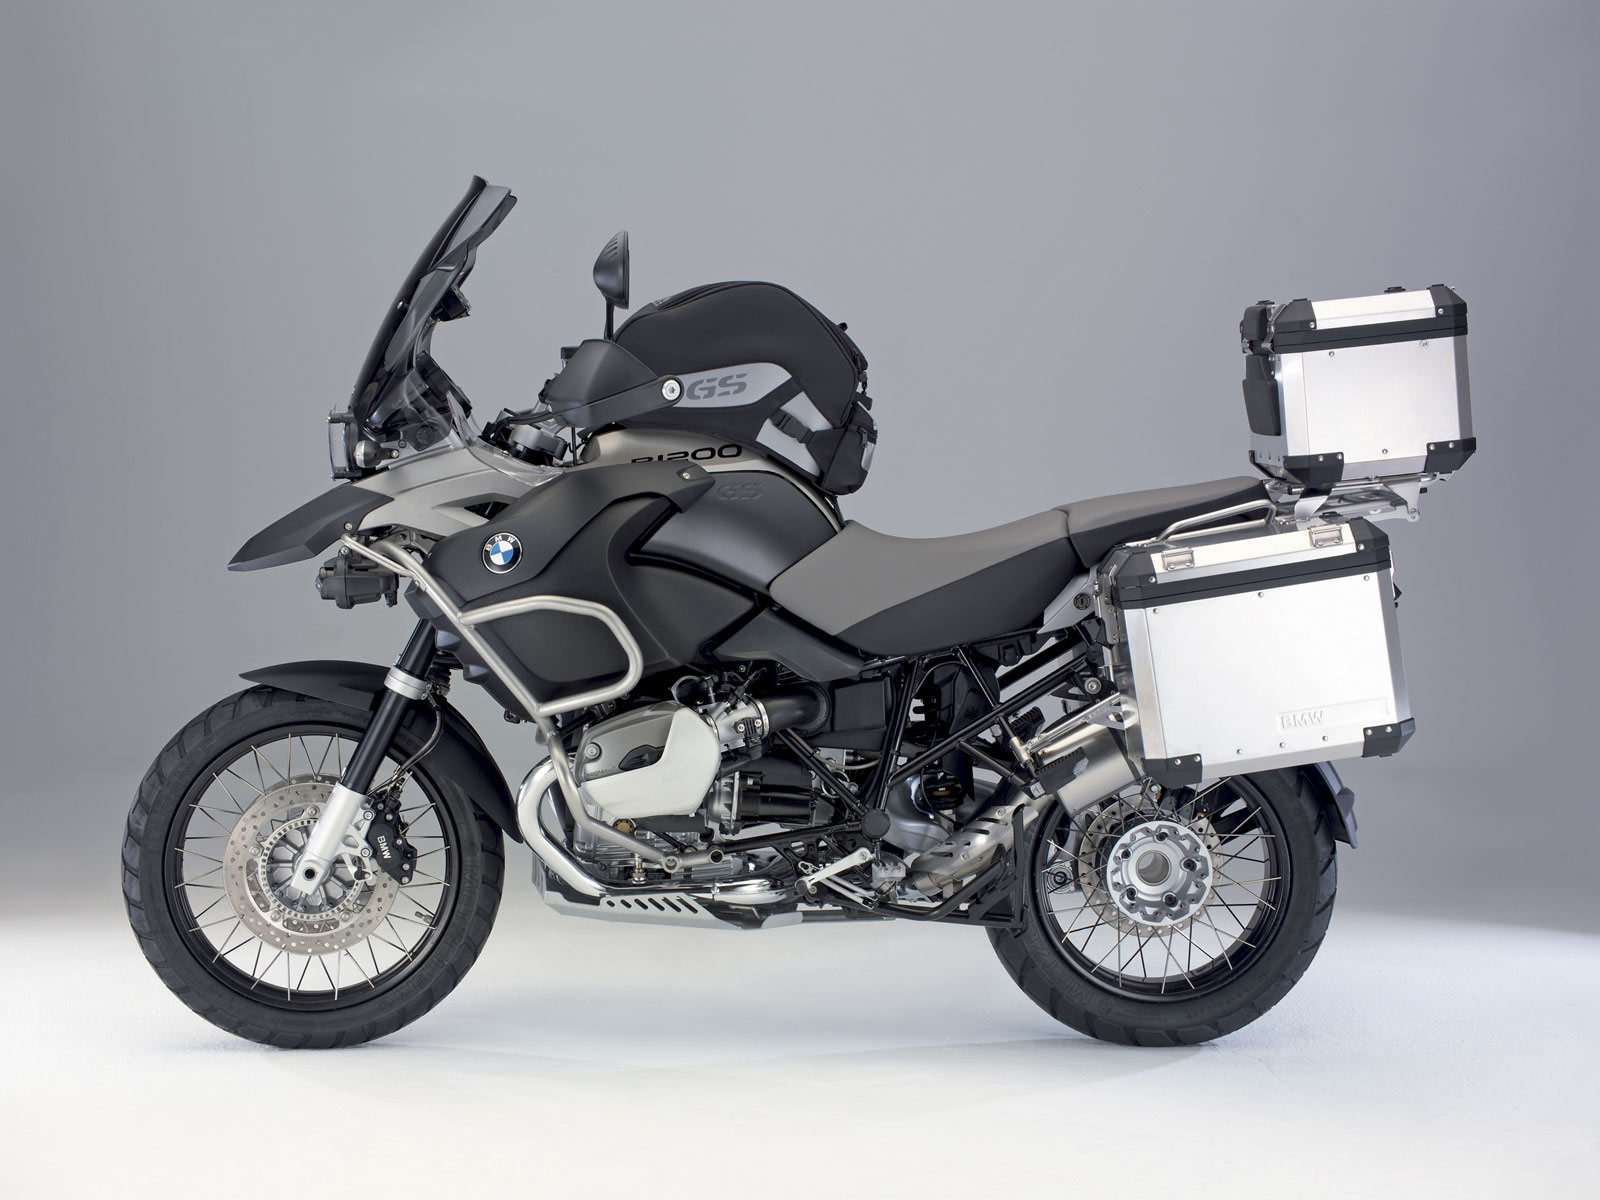 2008 bmw r 1200 gs adventures motorcycle wallpapers. Black Bedroom Furniture Sets. Home Design Ideas